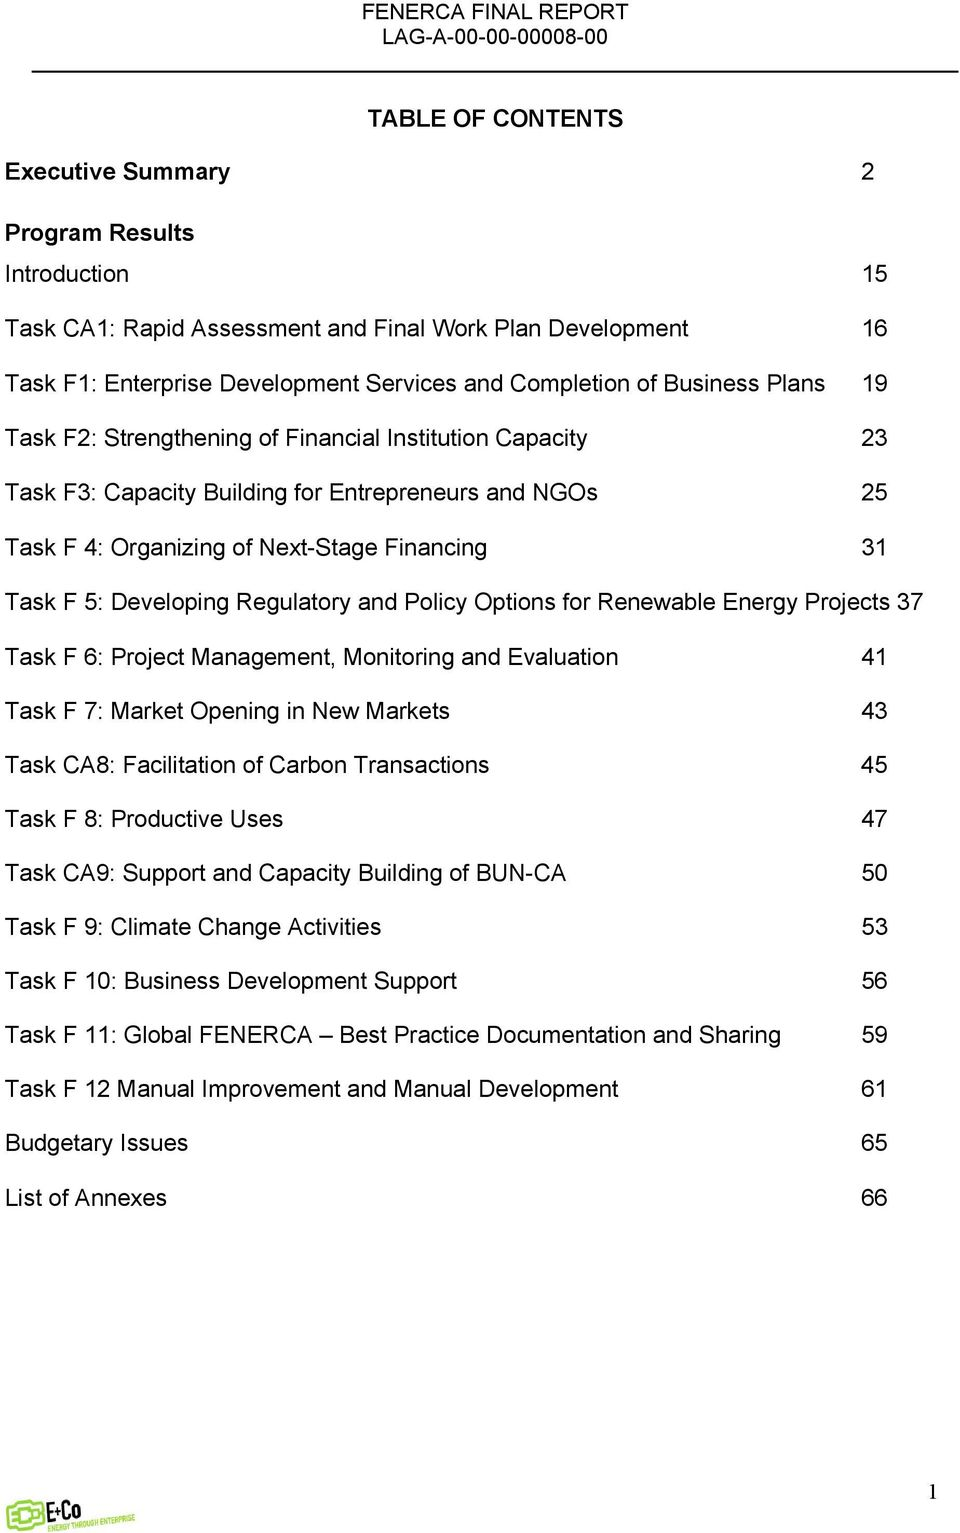 Regulatory and Policy Options for Renewable Energy Projects 37 Task F 6: Project Management, Monitoring and Evaluation 41 Task F 7: Market Opening in New Markets 43 Task CA8: Facilitation of Carbon